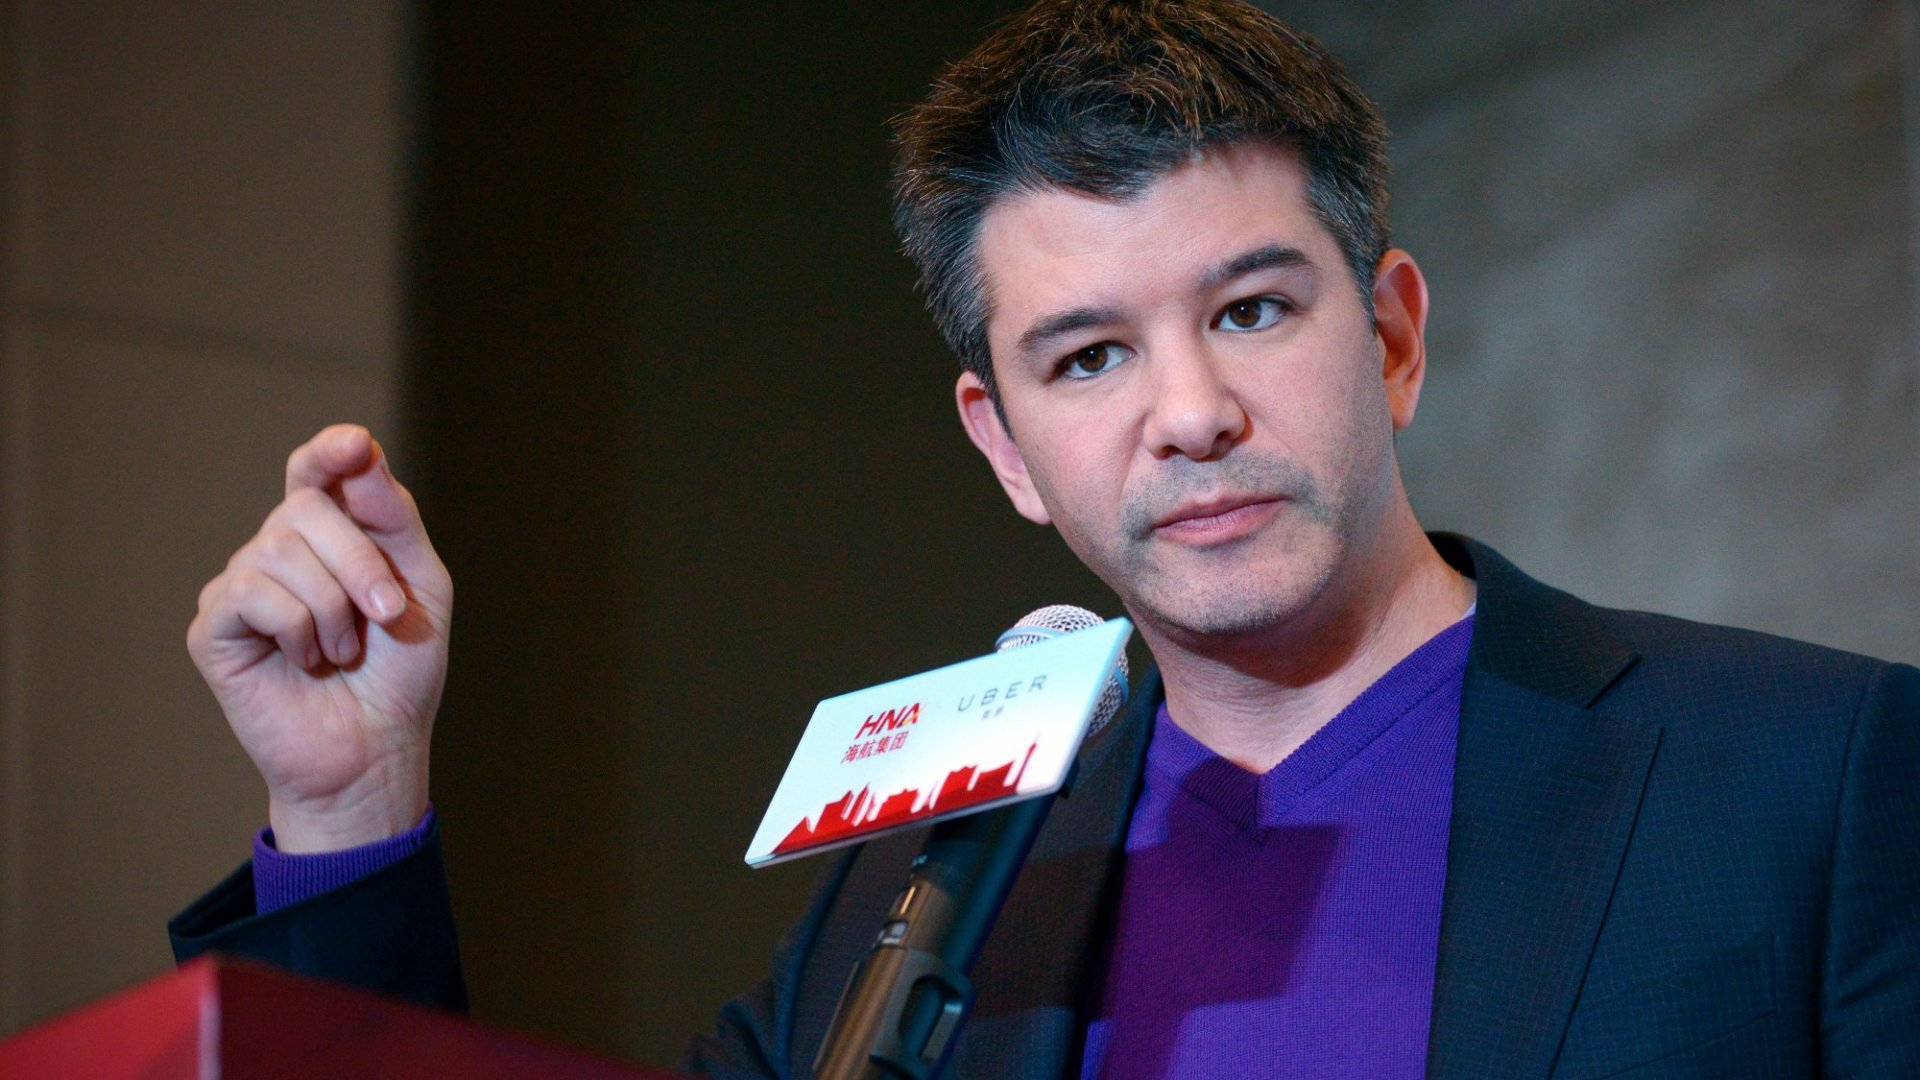 Google Accused Uber of Stealing Trade Secrets, and Now Uber Could Face Criminal Charges